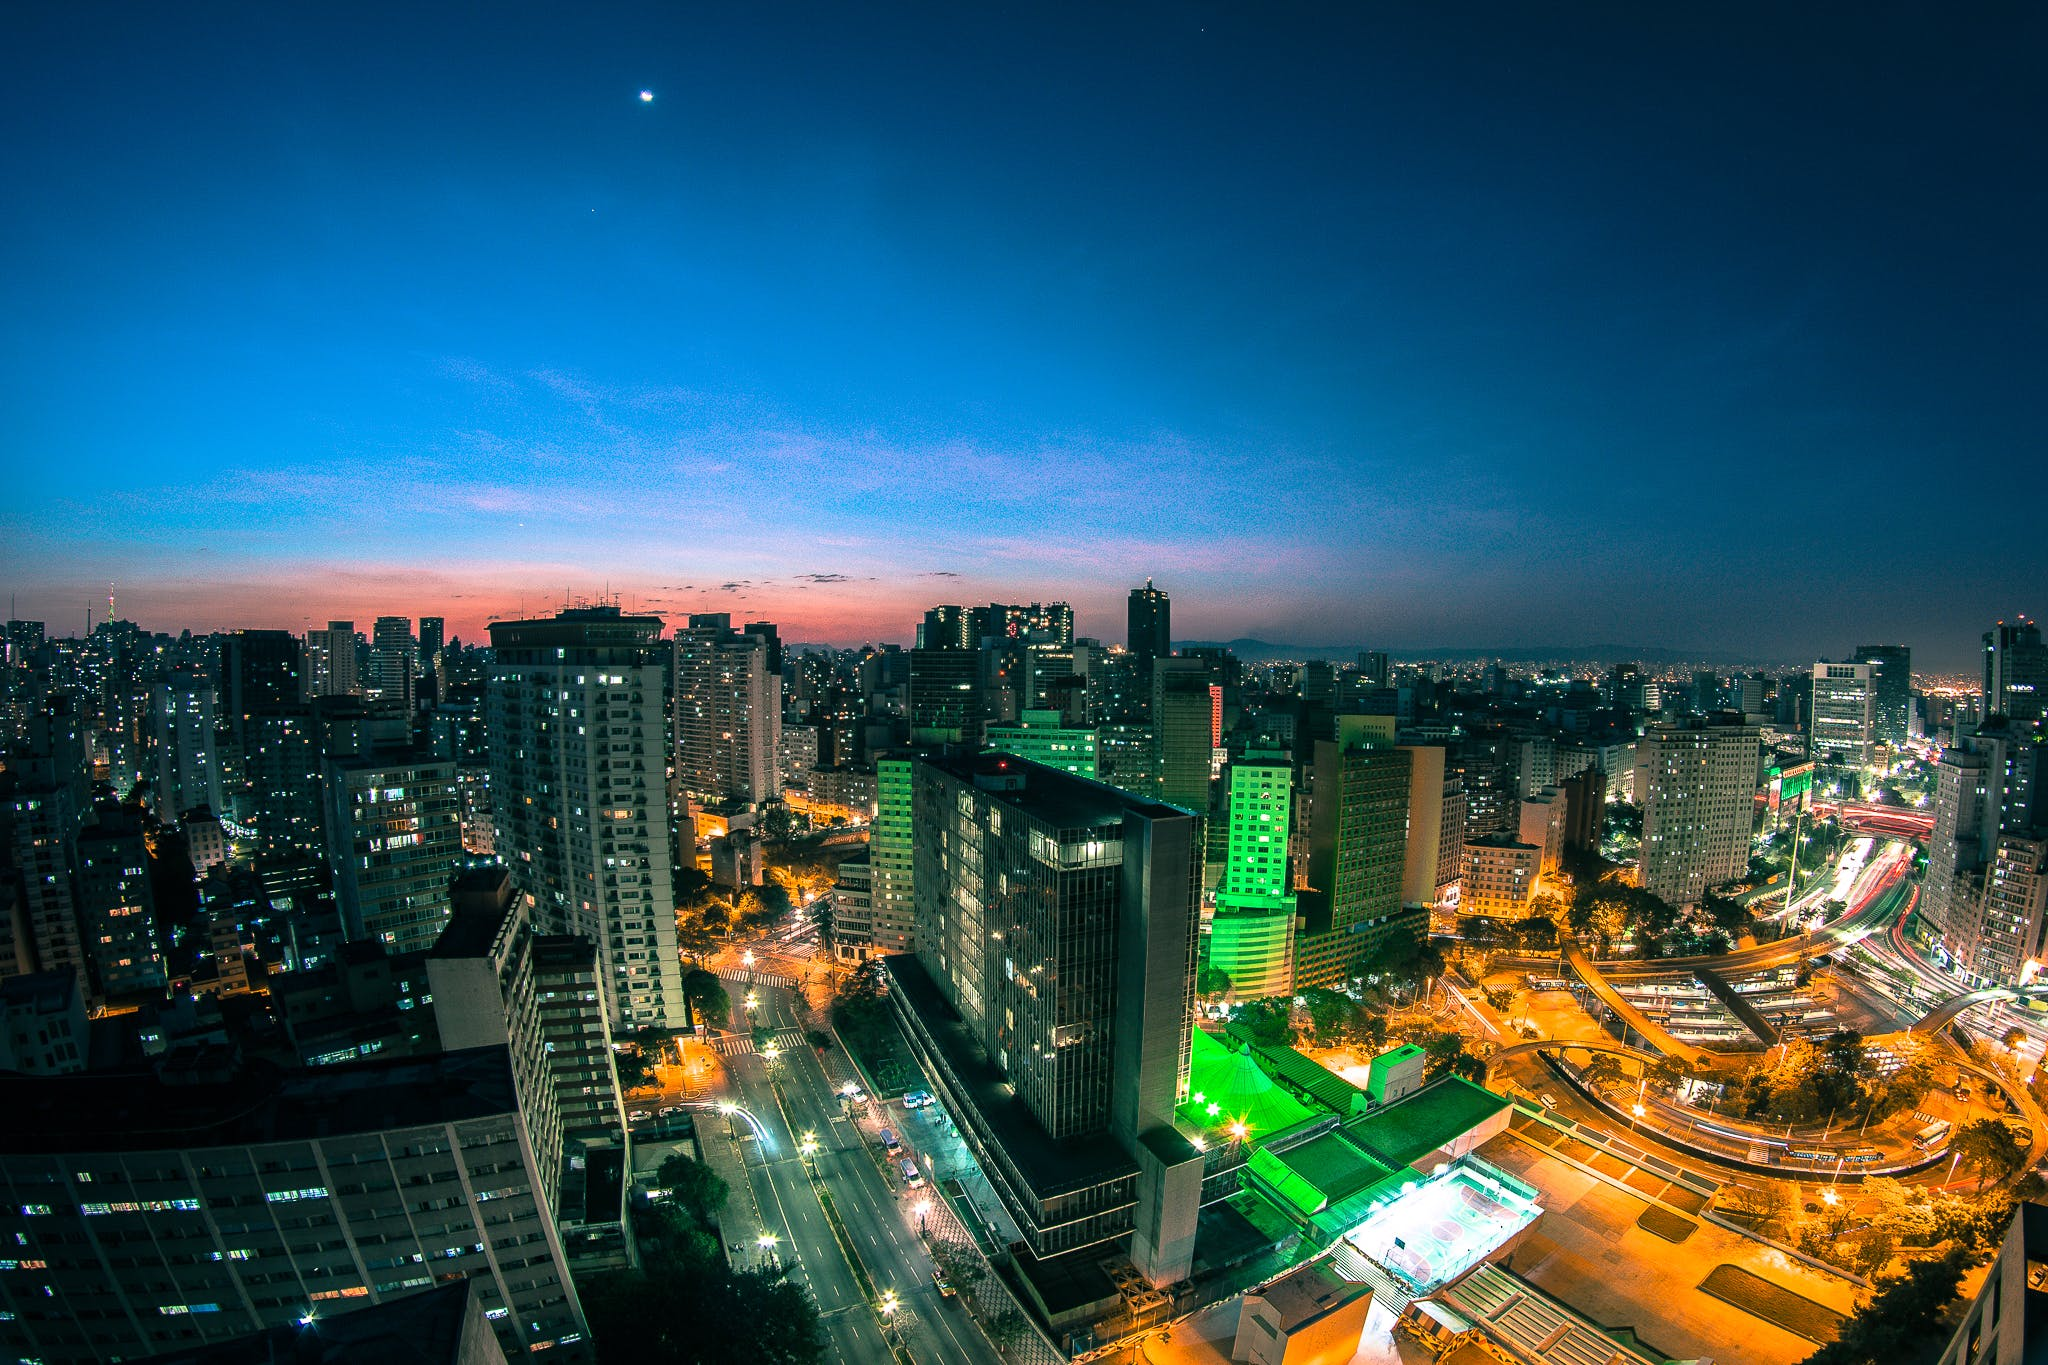 Aerial Photography of Skyline at Night